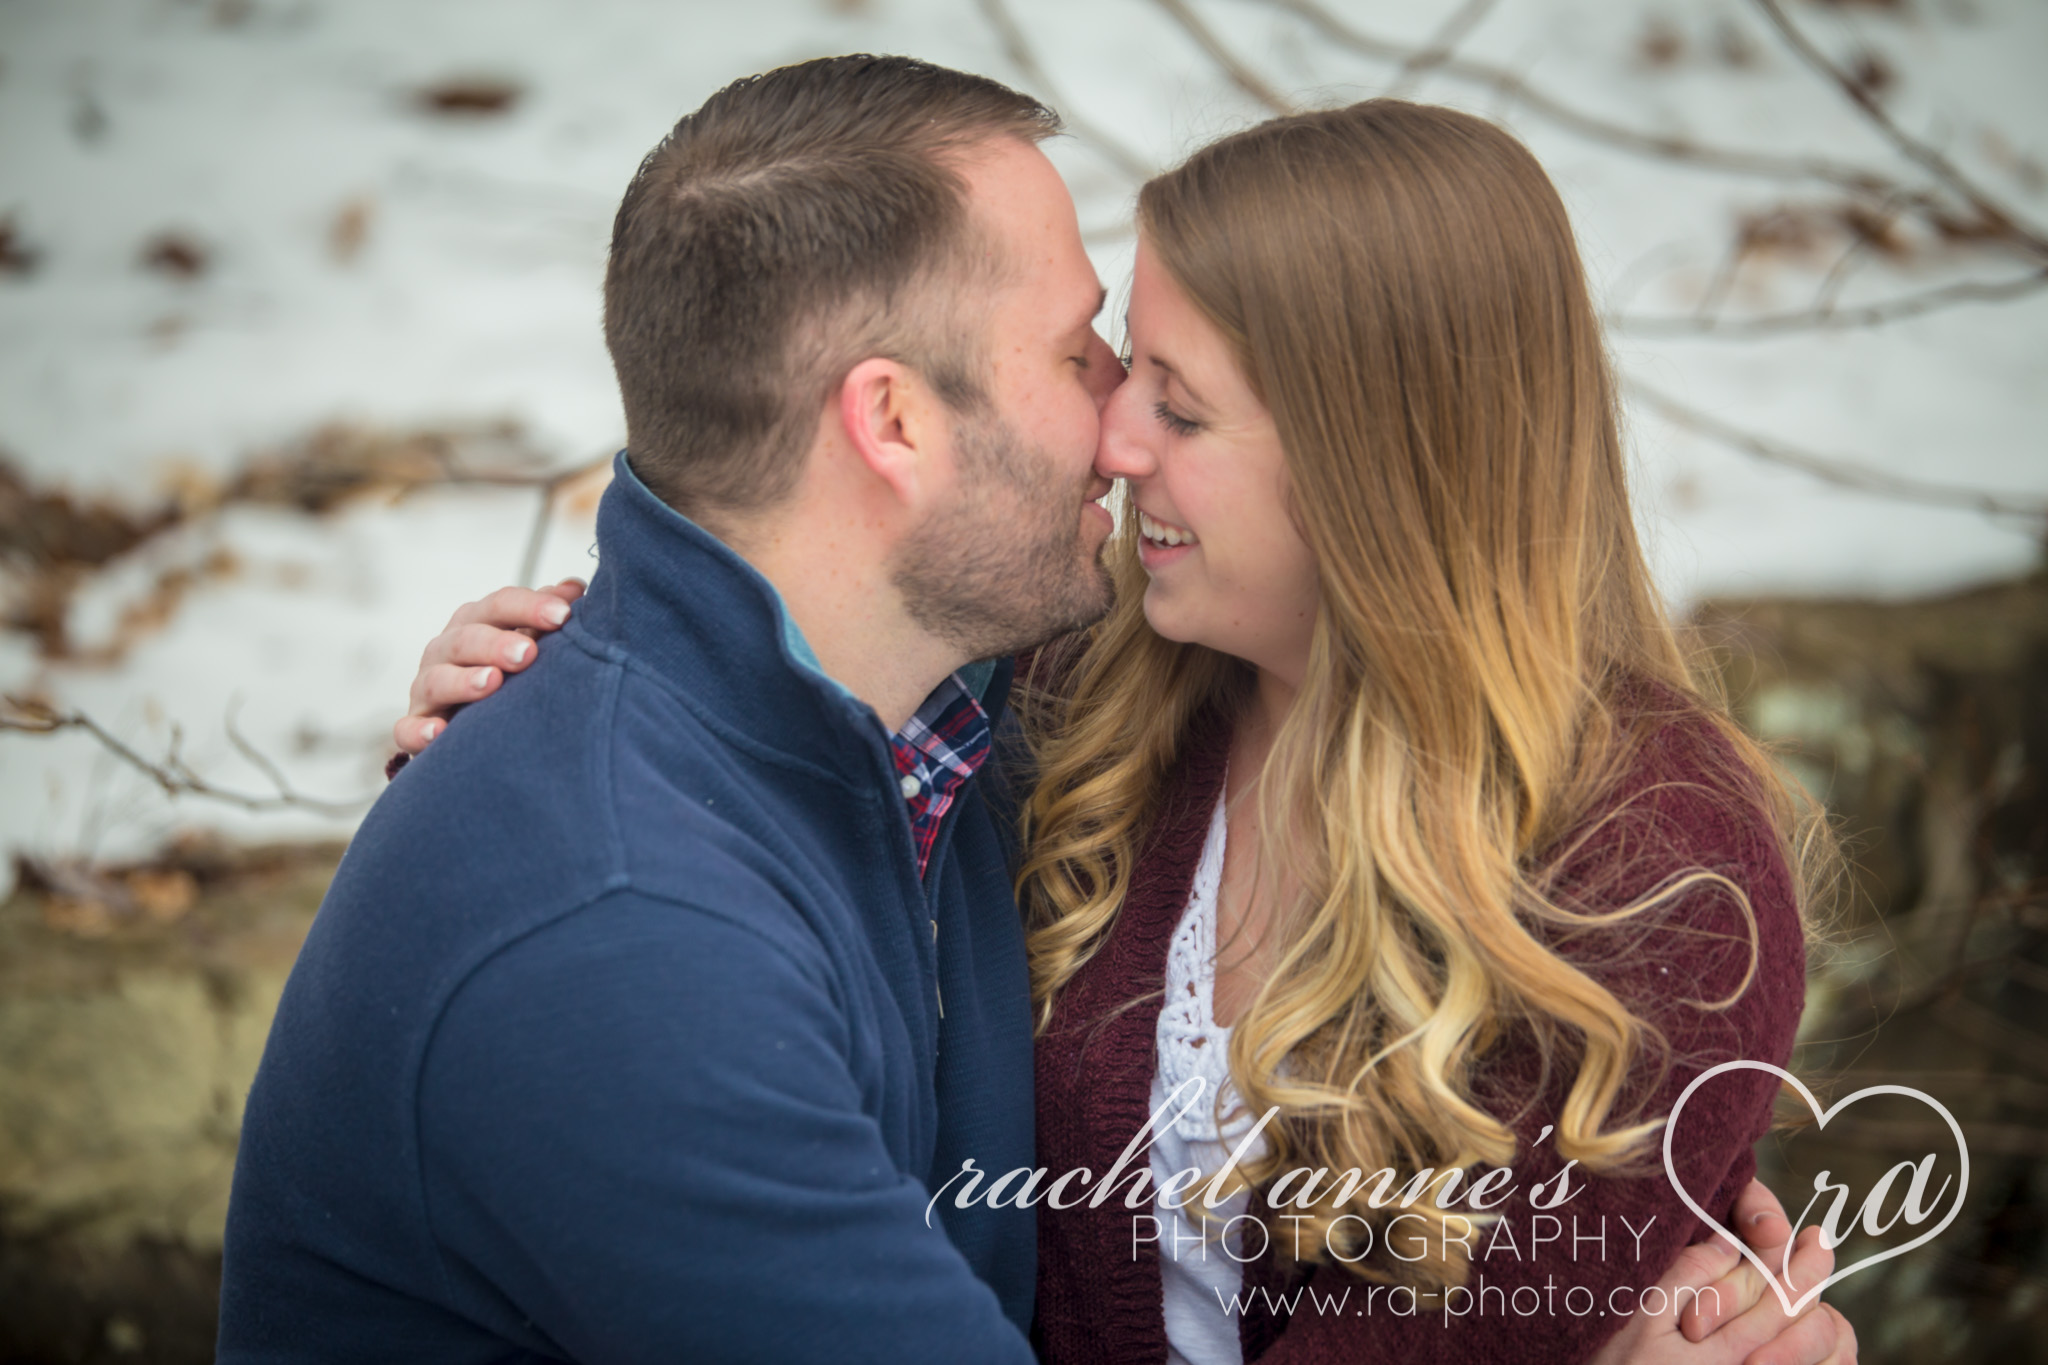 043-JKM-DUBOIS-PA-ENGAGEMENT-PHOTOGRAPHY.jpg